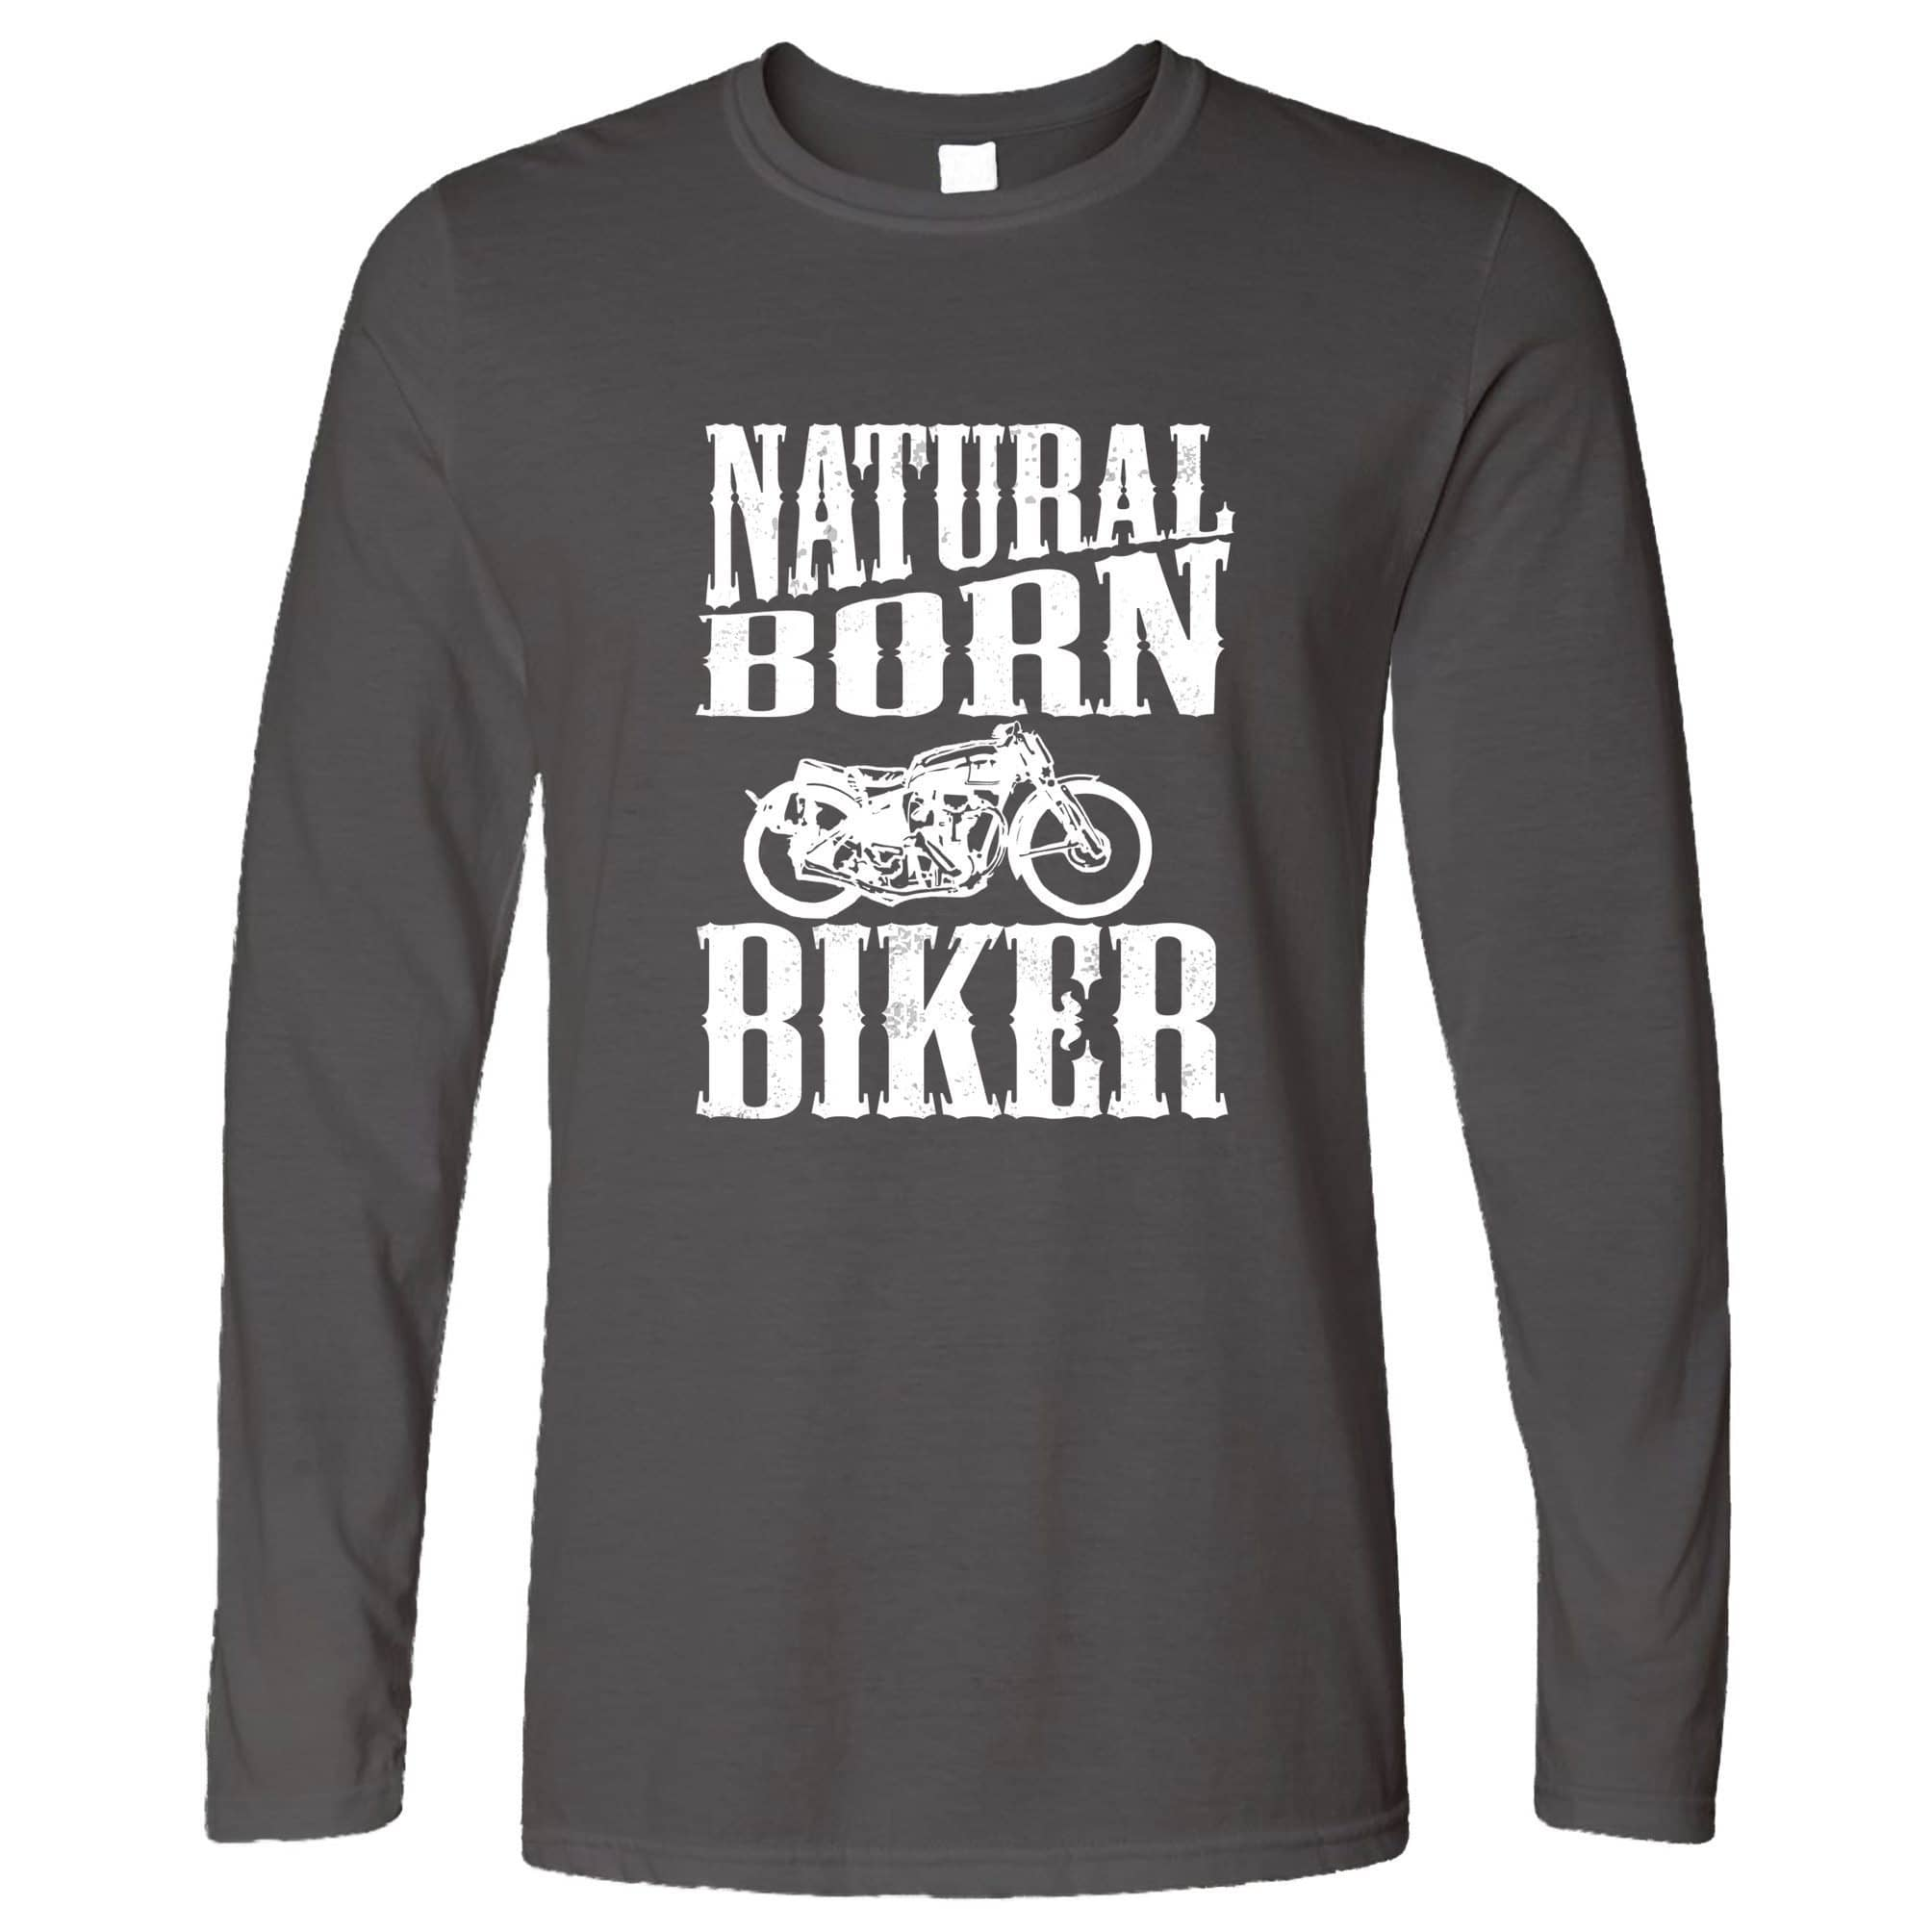 Biker Long Sleeve Natural Born Biker Slogan T-Shirt